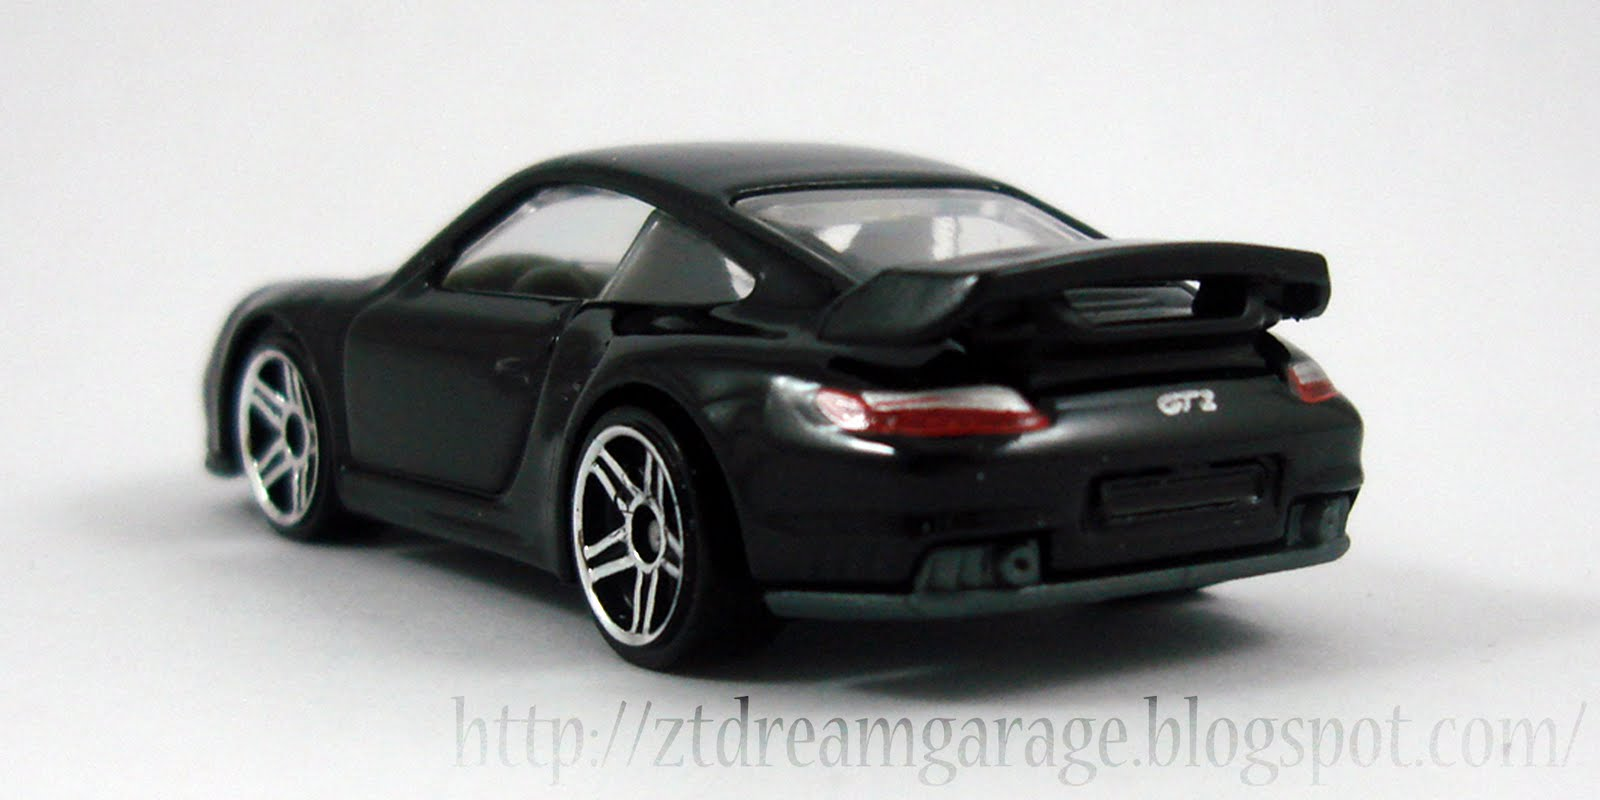 zt 39 s dream garage hot wheels porsche 911 gt2. Black Bedroom Furniture Sets. Home Design Ideas